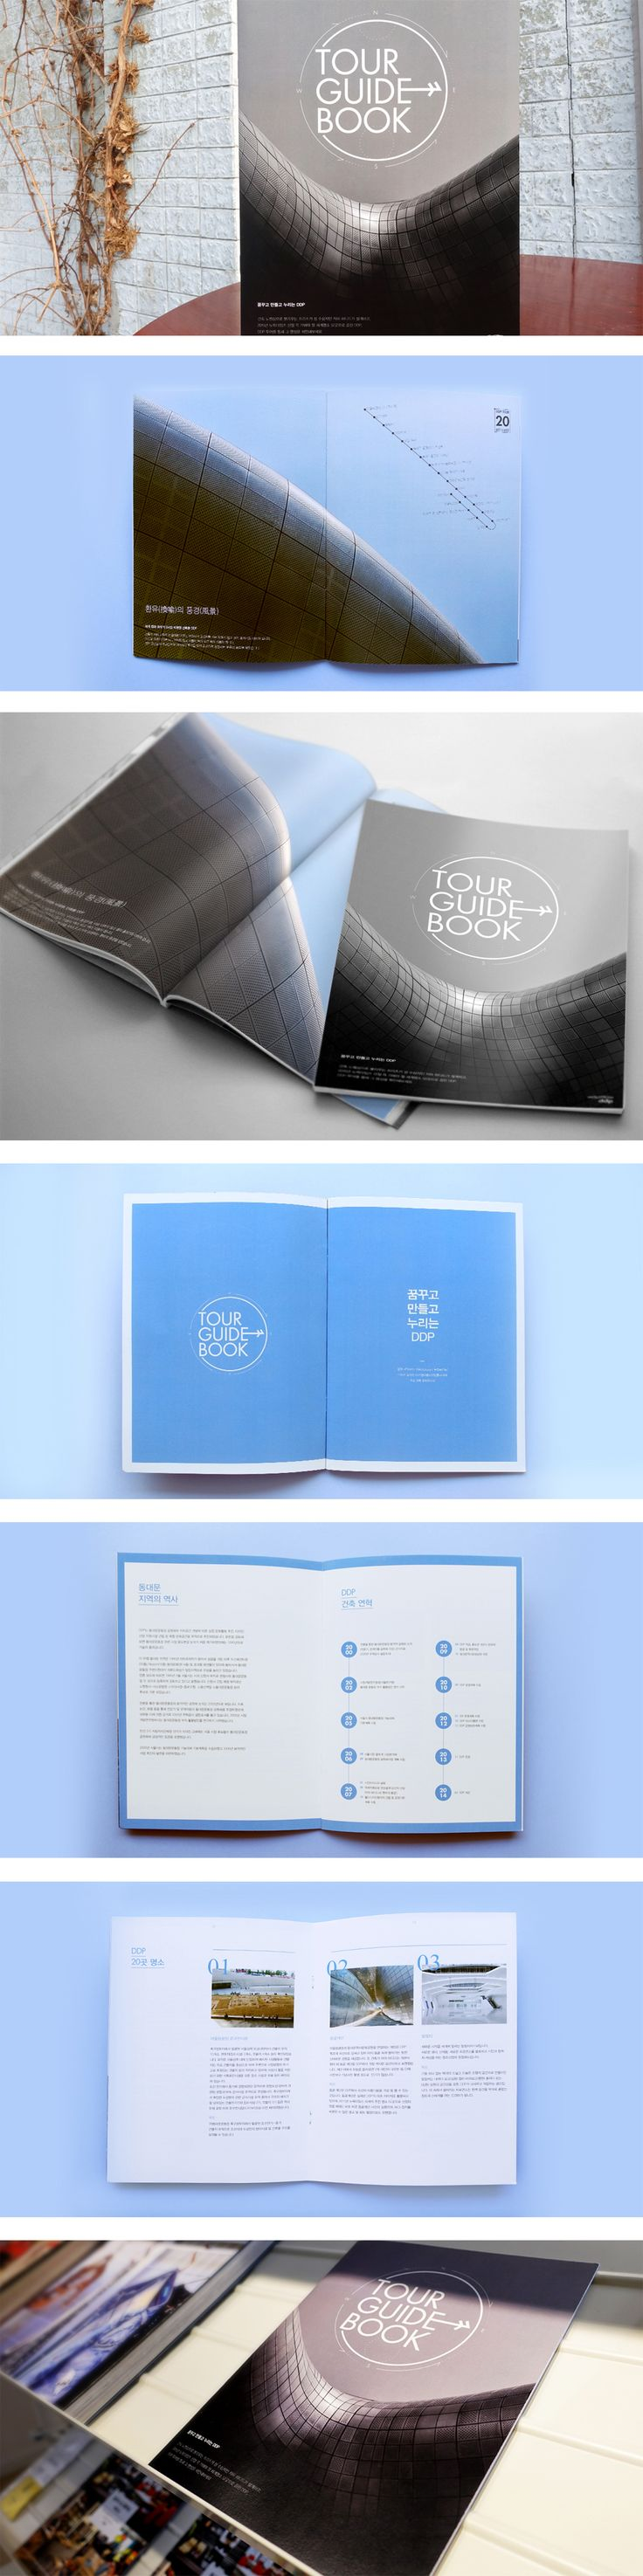 디자인 나스 (designnas) 학생 광고 편집 디자인 - 팜플렛 포트폴리오 (advertisement pamphlet)입니다. 키워드 : brand, ad, advertisement, leaflet, pamphlet, catalog, brochure, poster, branding, info graphic, design, paper, graphics, portfolio 디자인나스의 작품은 모두 학생작품입니다. all rights reserved designnas www.designnas.com